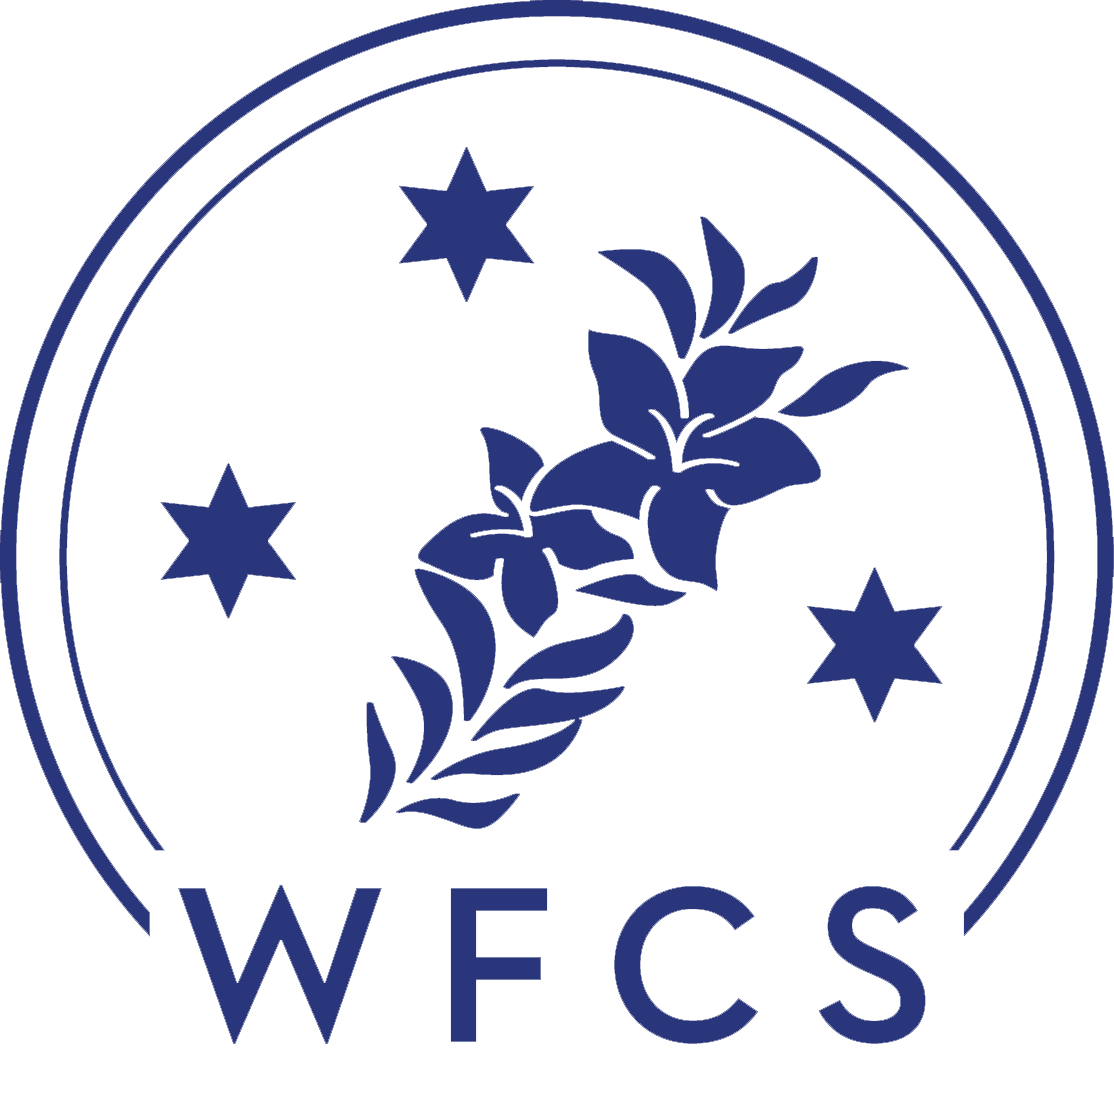 WFCS (Wilfrid Faber Counselling & Support Service)